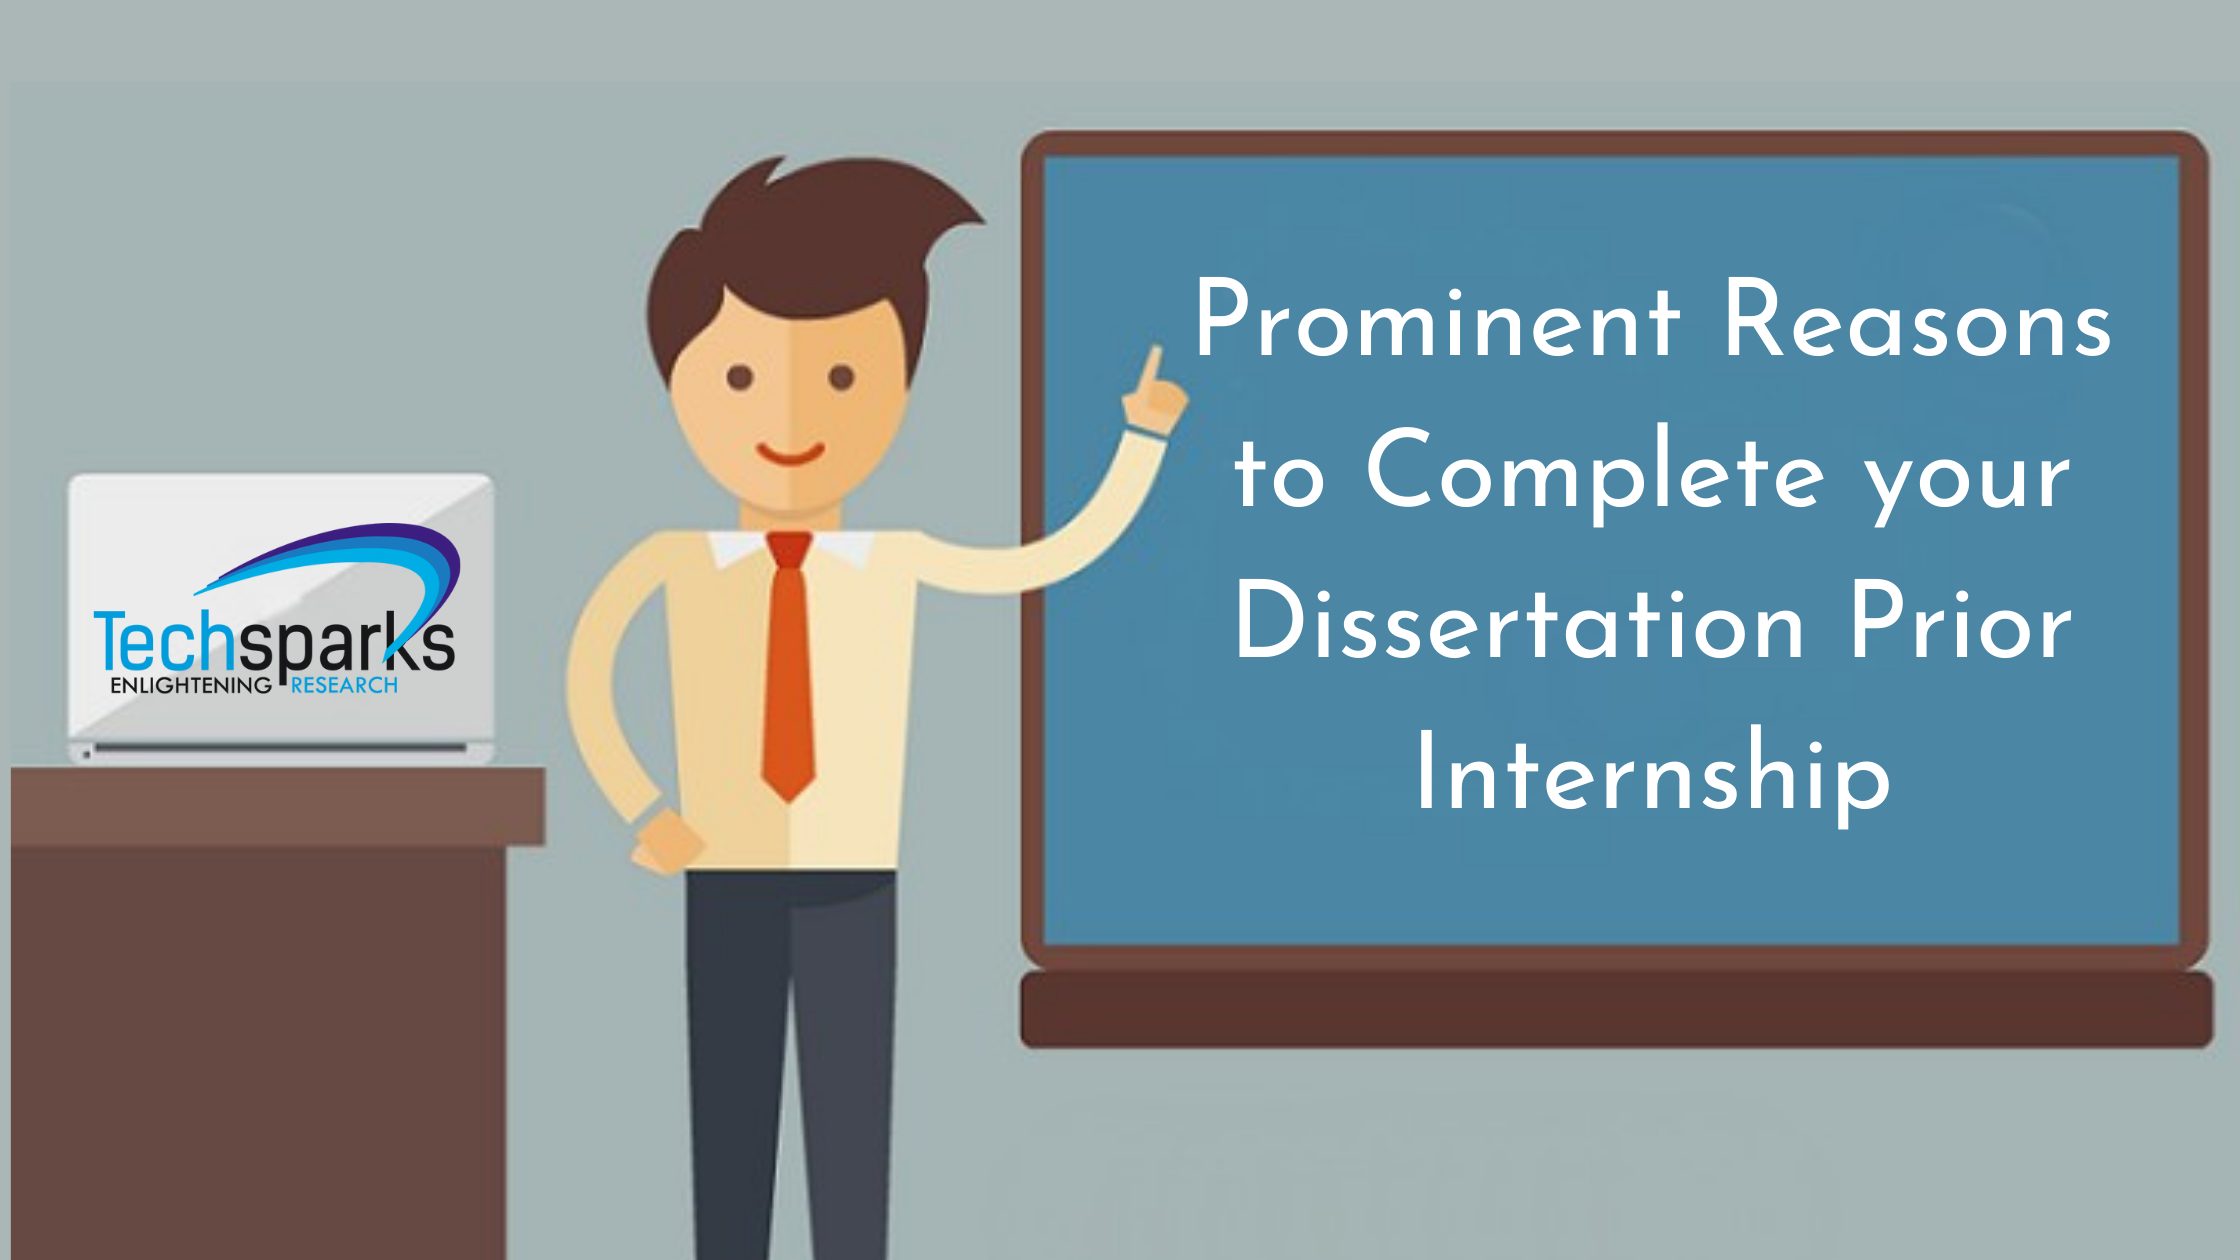 Prominent Reasons to Complete your Dissertation Prior Internship